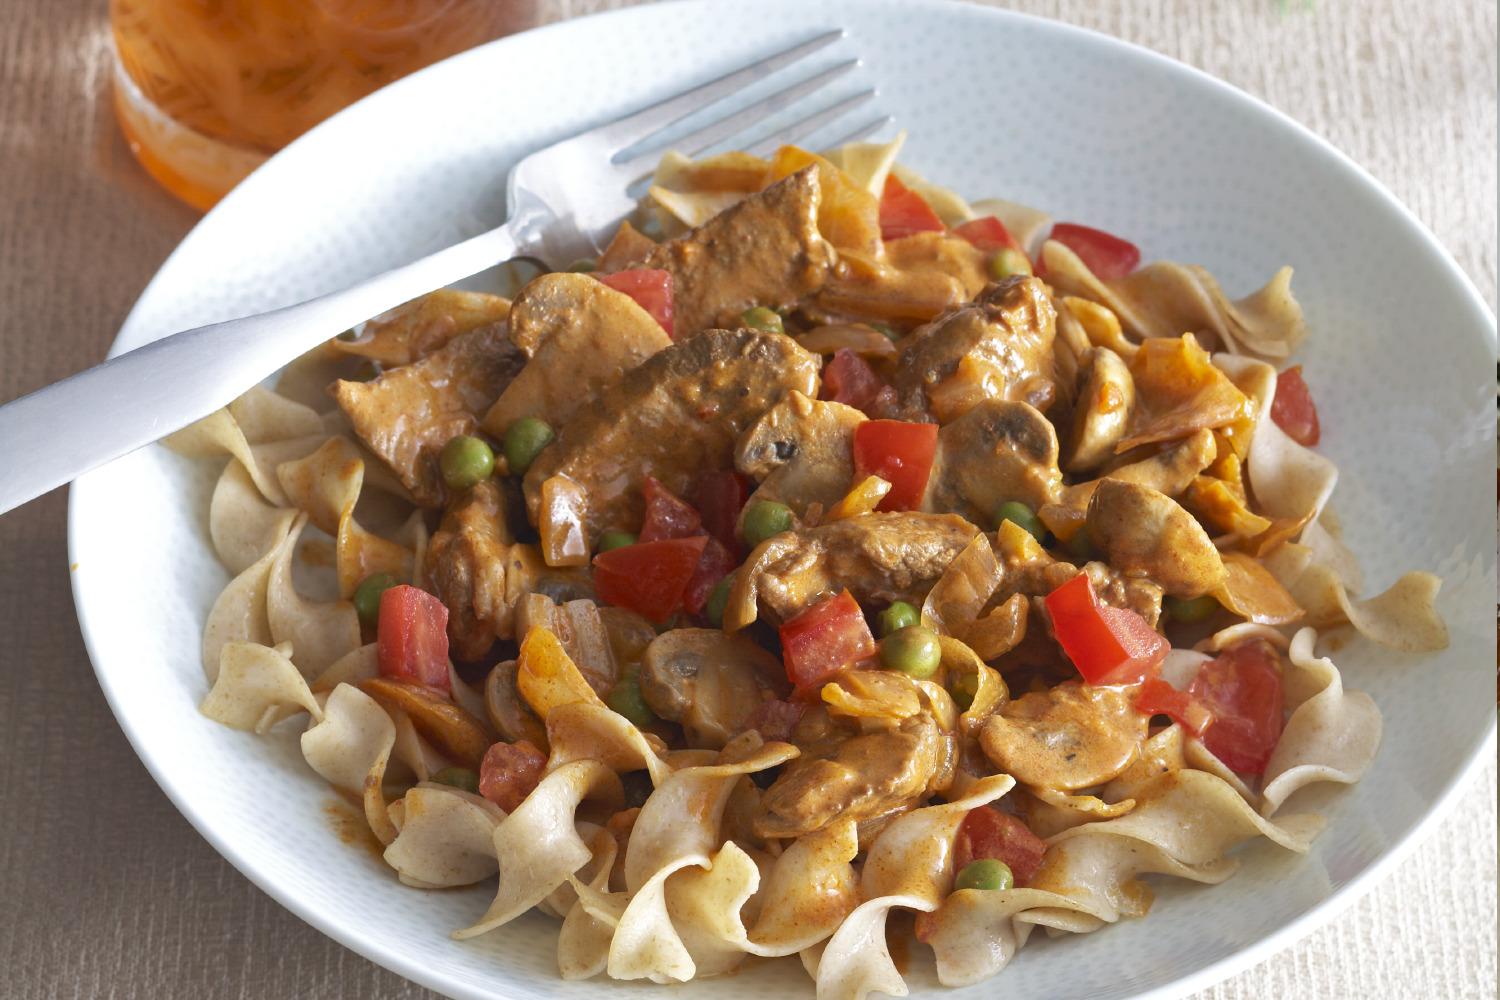 Creamy Beef & Mushrooms with Noodles Image 1